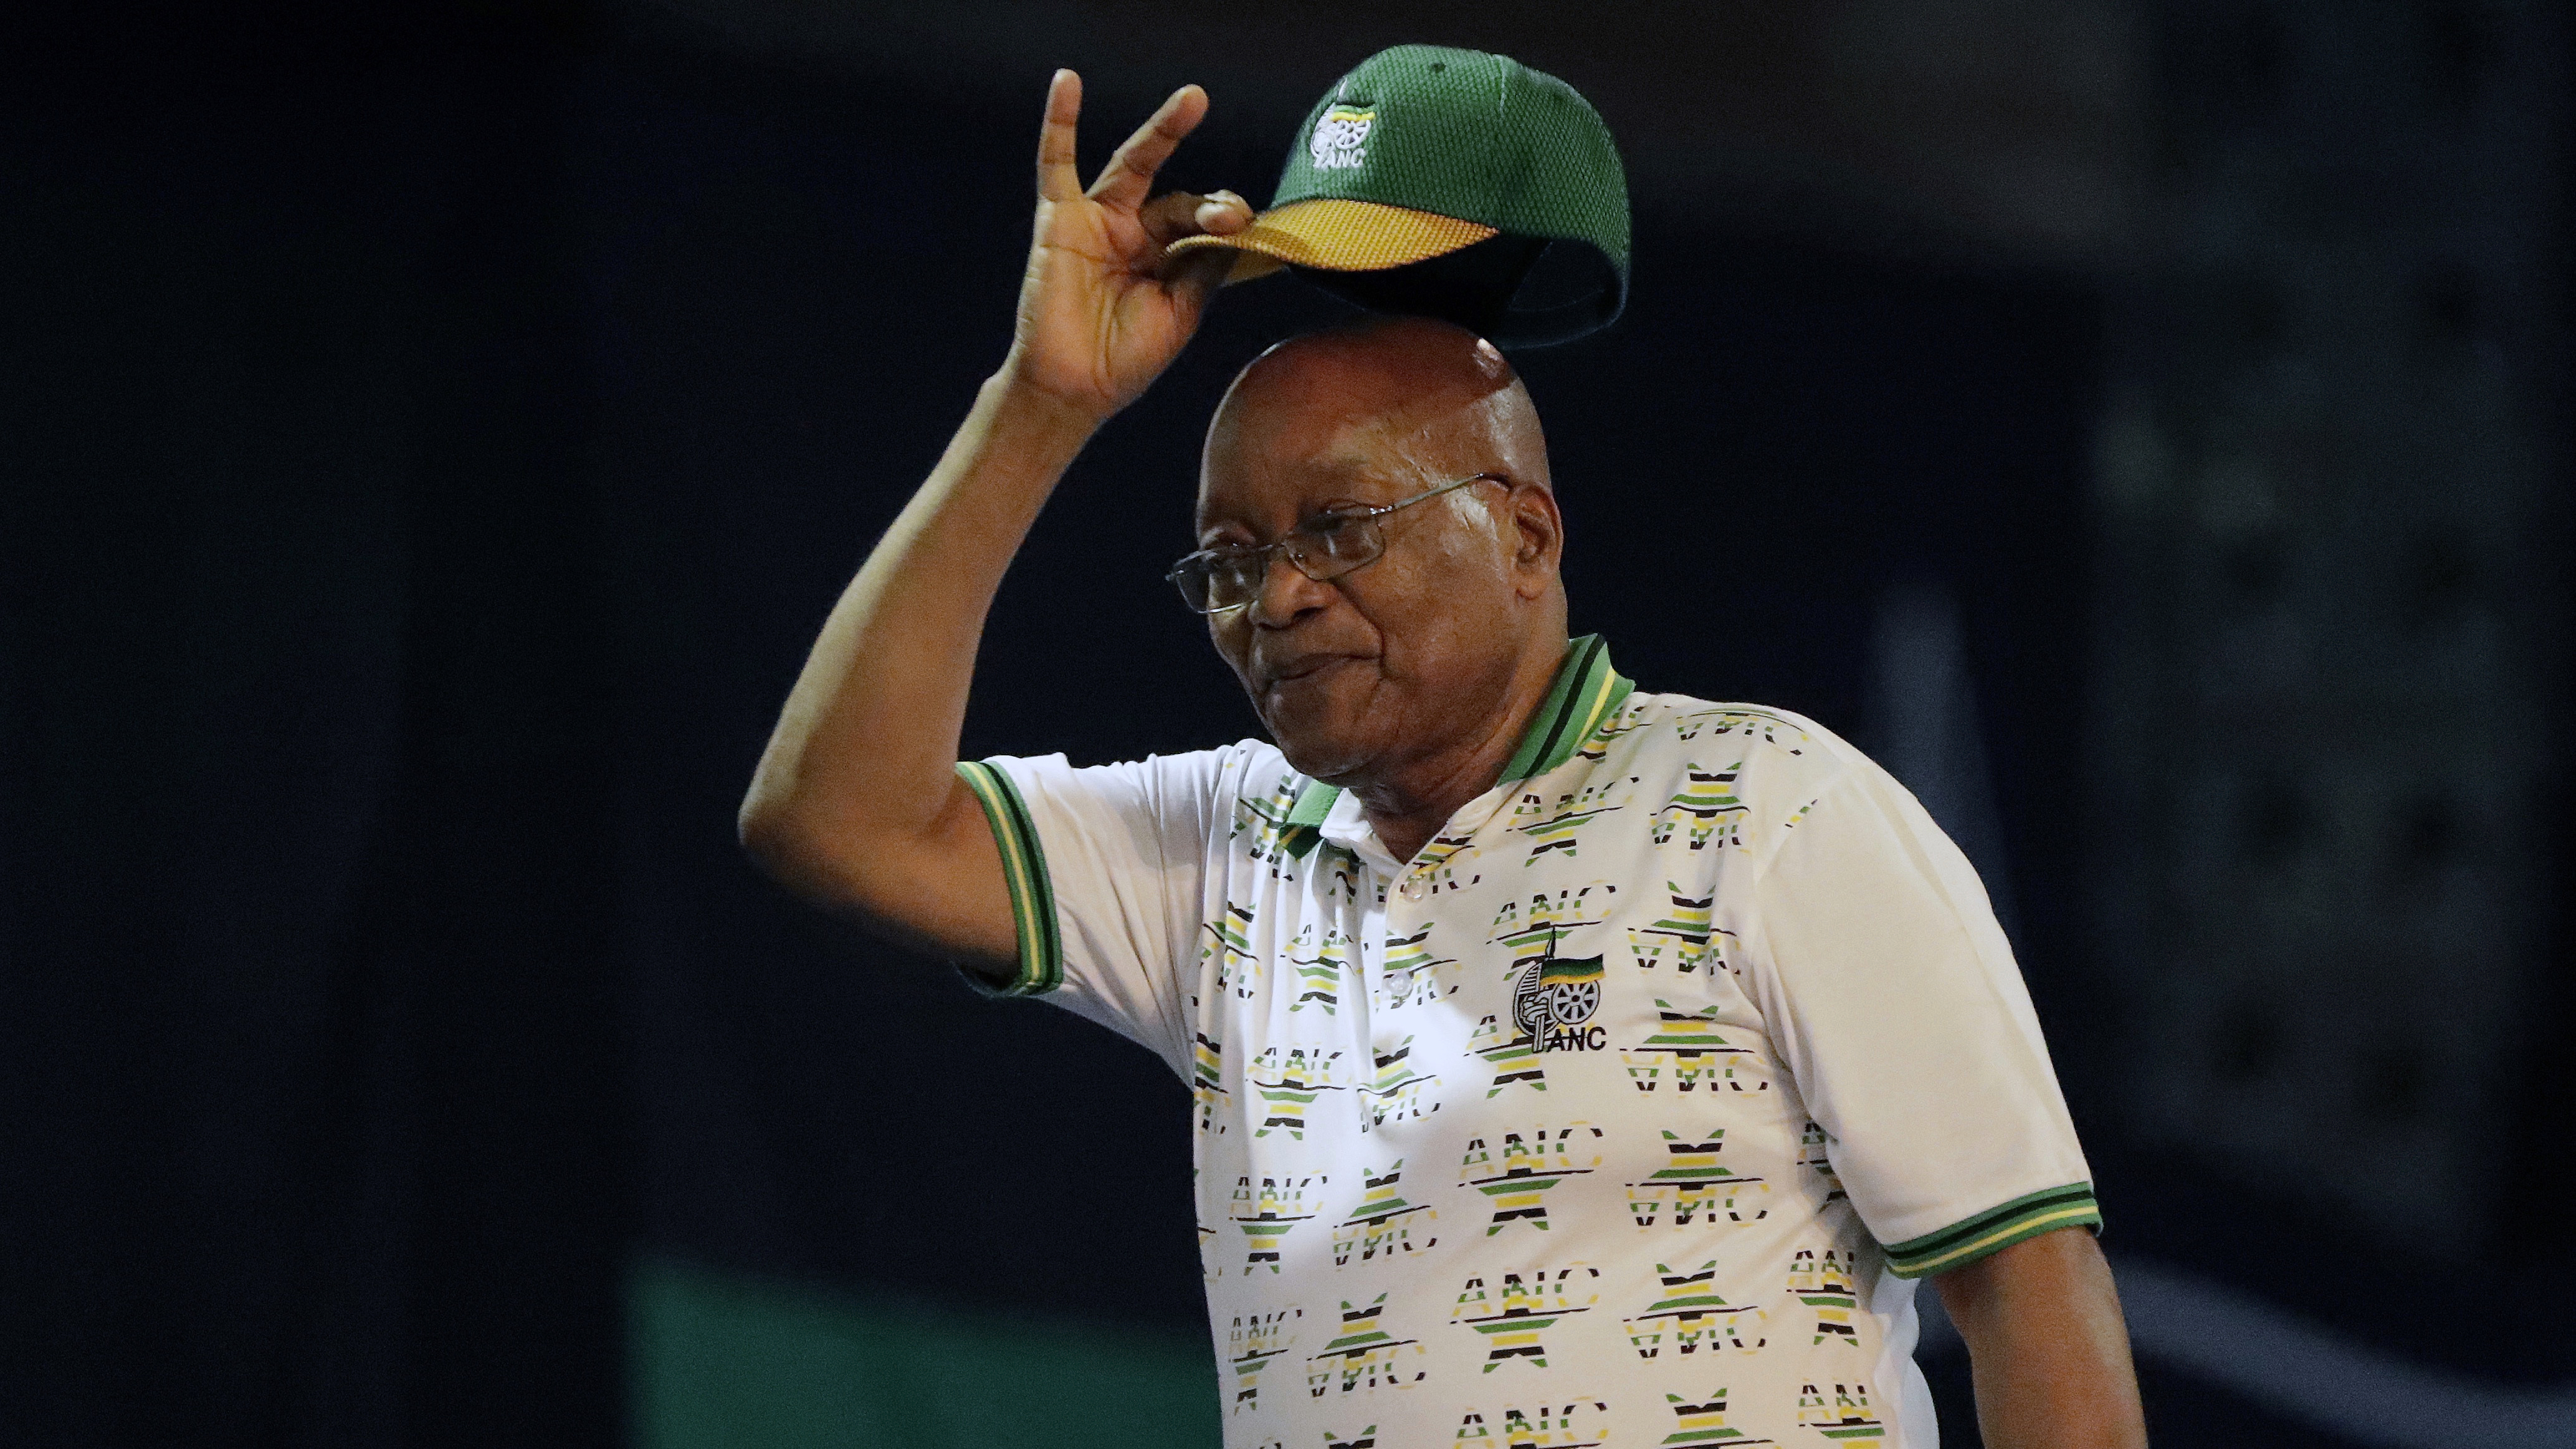 Outgoing ANC president and South African President Jacob Zuma, raises his cap after the newly elected African National Congress (ANC) President, Cyril Ramaphosa,  after it was announced that he had won the vote at the ANC's elective conference in Johannesburg, Monday Dec. 18, 2017. Outgoing Zuma's second and final term as party leader has ended after a scandal-ridden tenure that has seen a plummet in the popularity of Nelson Mandela's liberation movement. (AP Photo/Themba Hadebe)